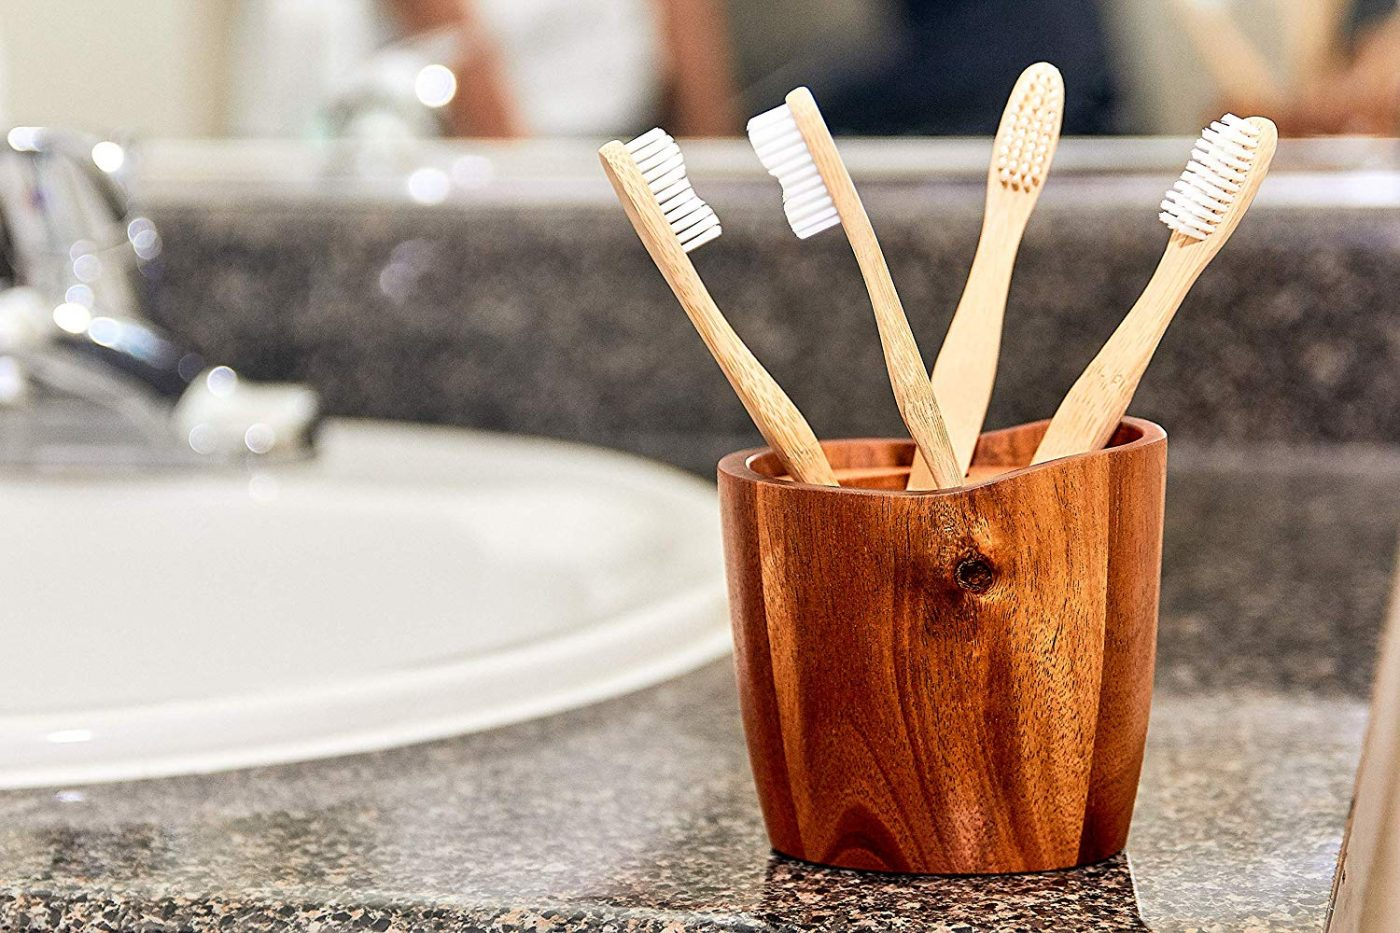 Bamboo toothbrush - our favourite travel accessories